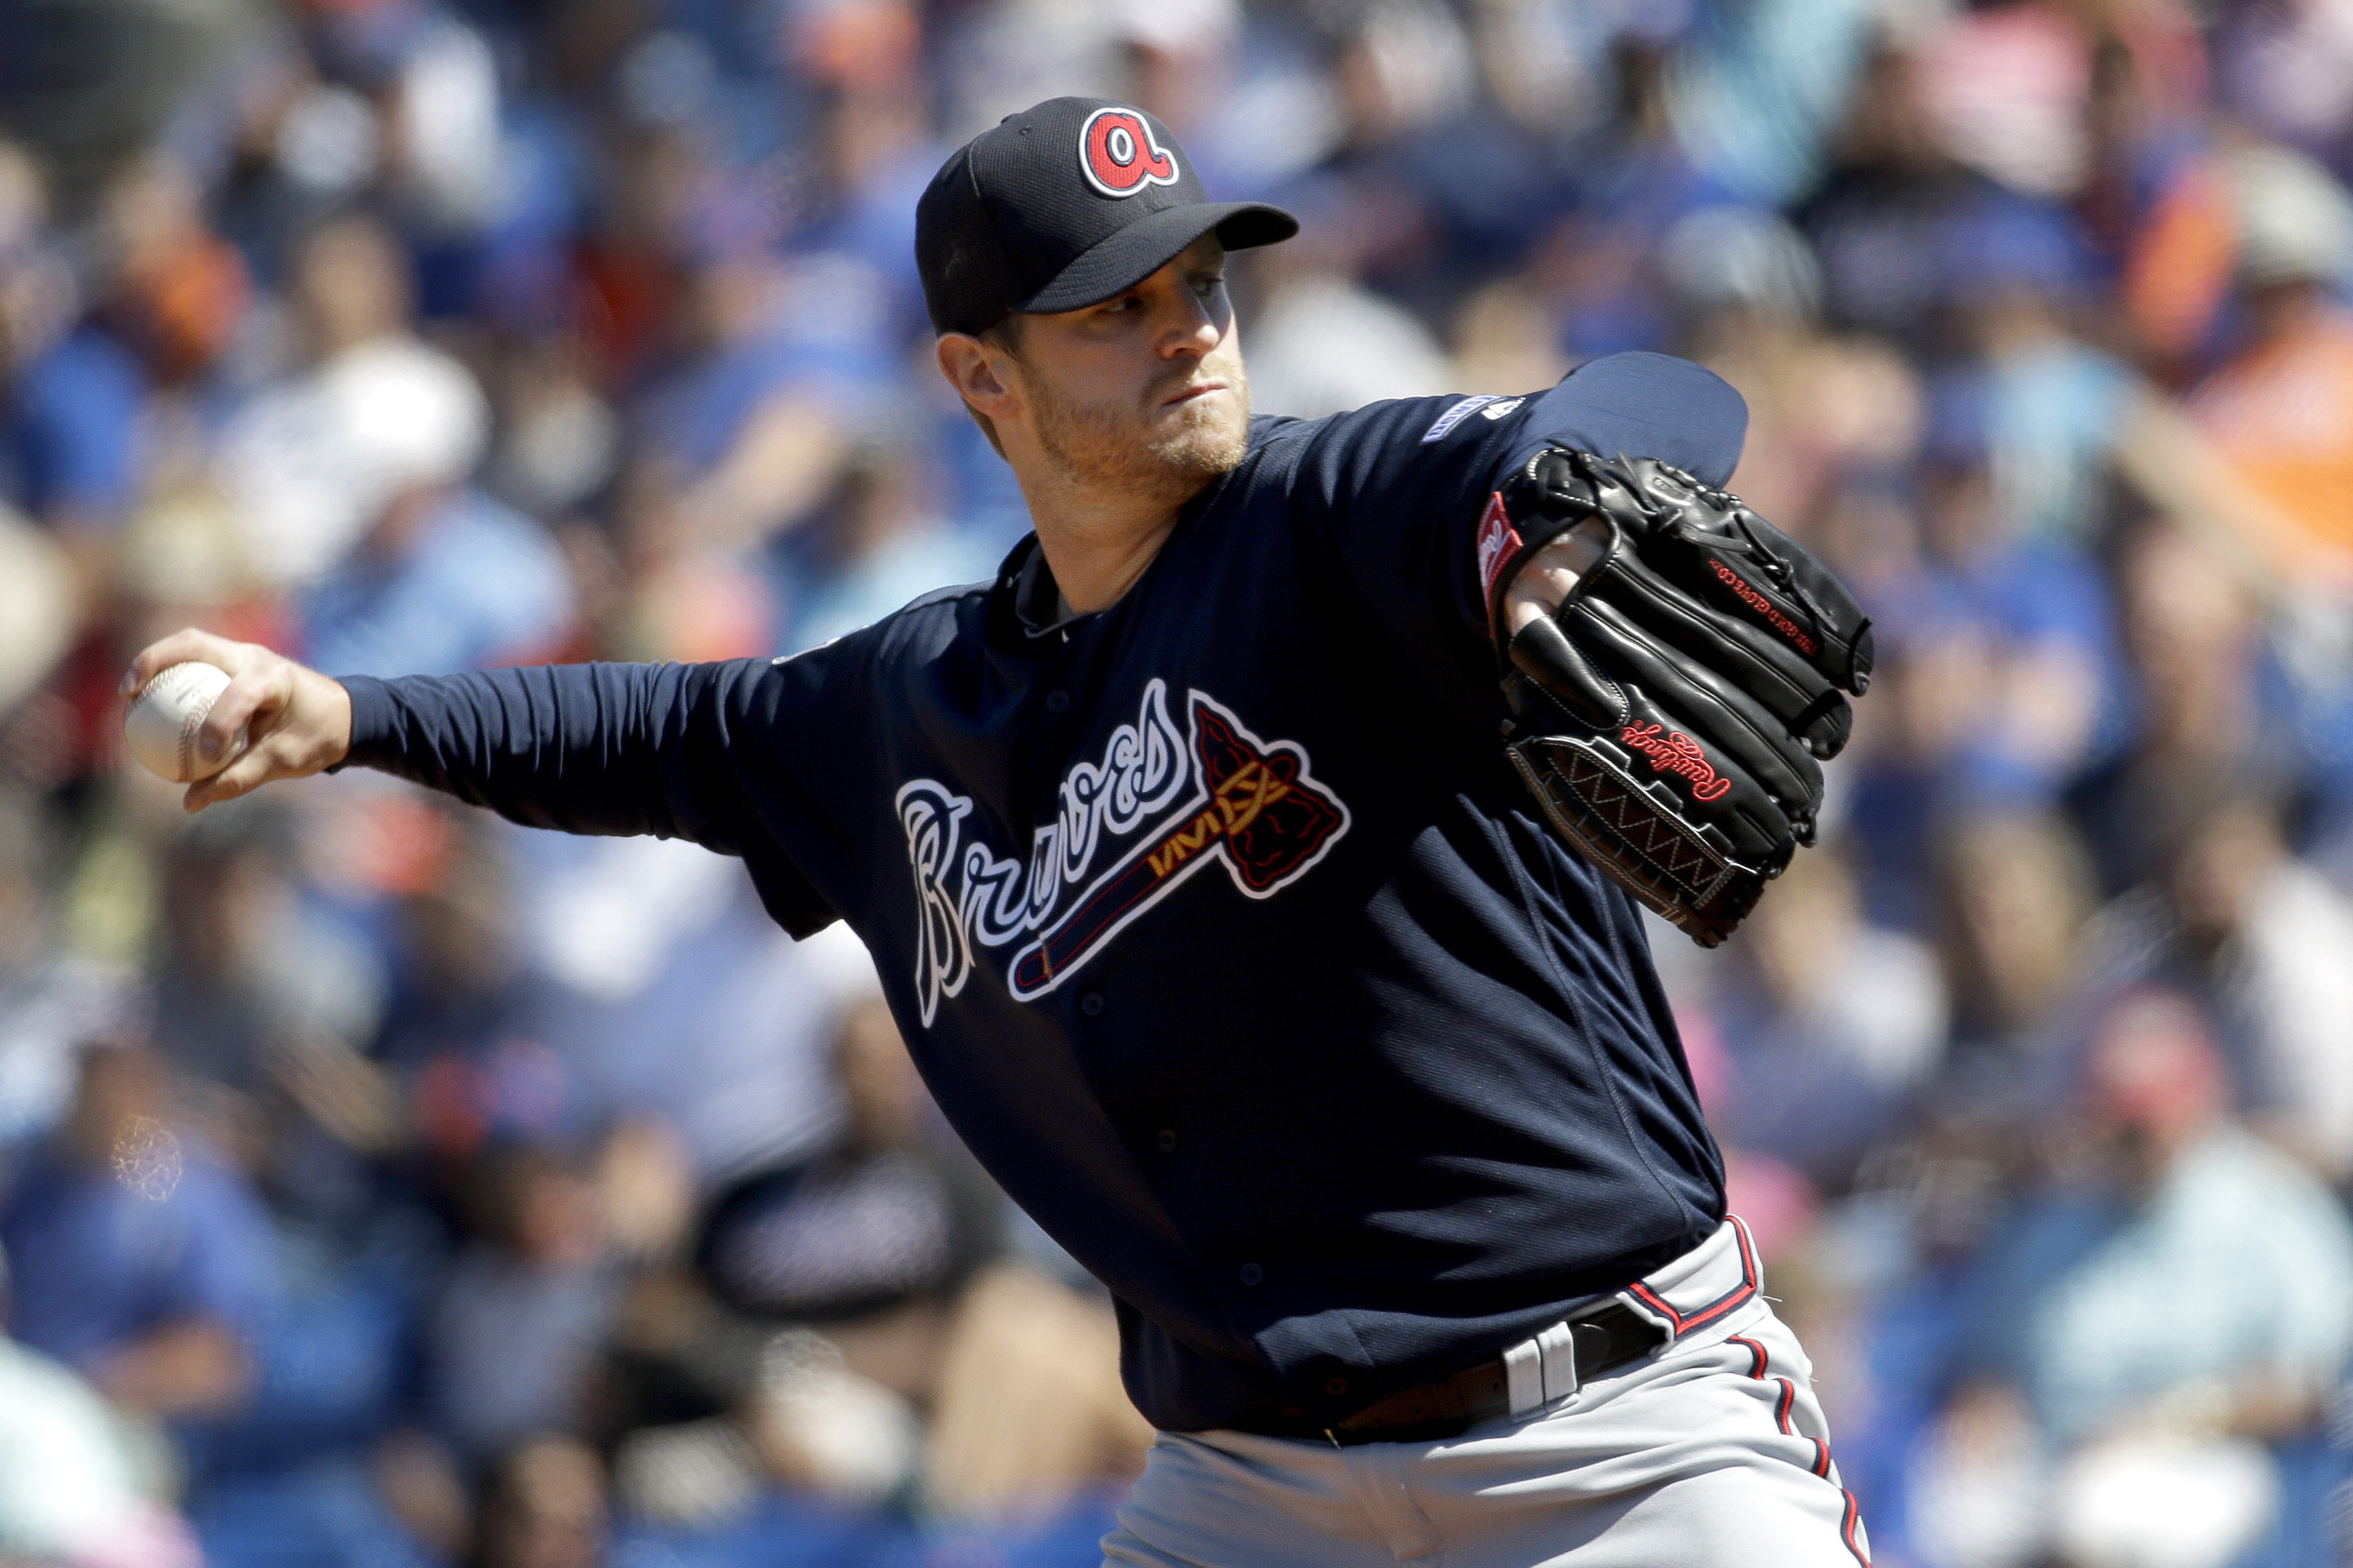 Atlanta Braves starting pitcher Kyle Kendrick throws during the first inning of an exhibition spring training baseball game against the New York Mets, Sunday, March 6, 2016, in Port St. Lucie, Fla. (AP Photo/Jeff Roberson)